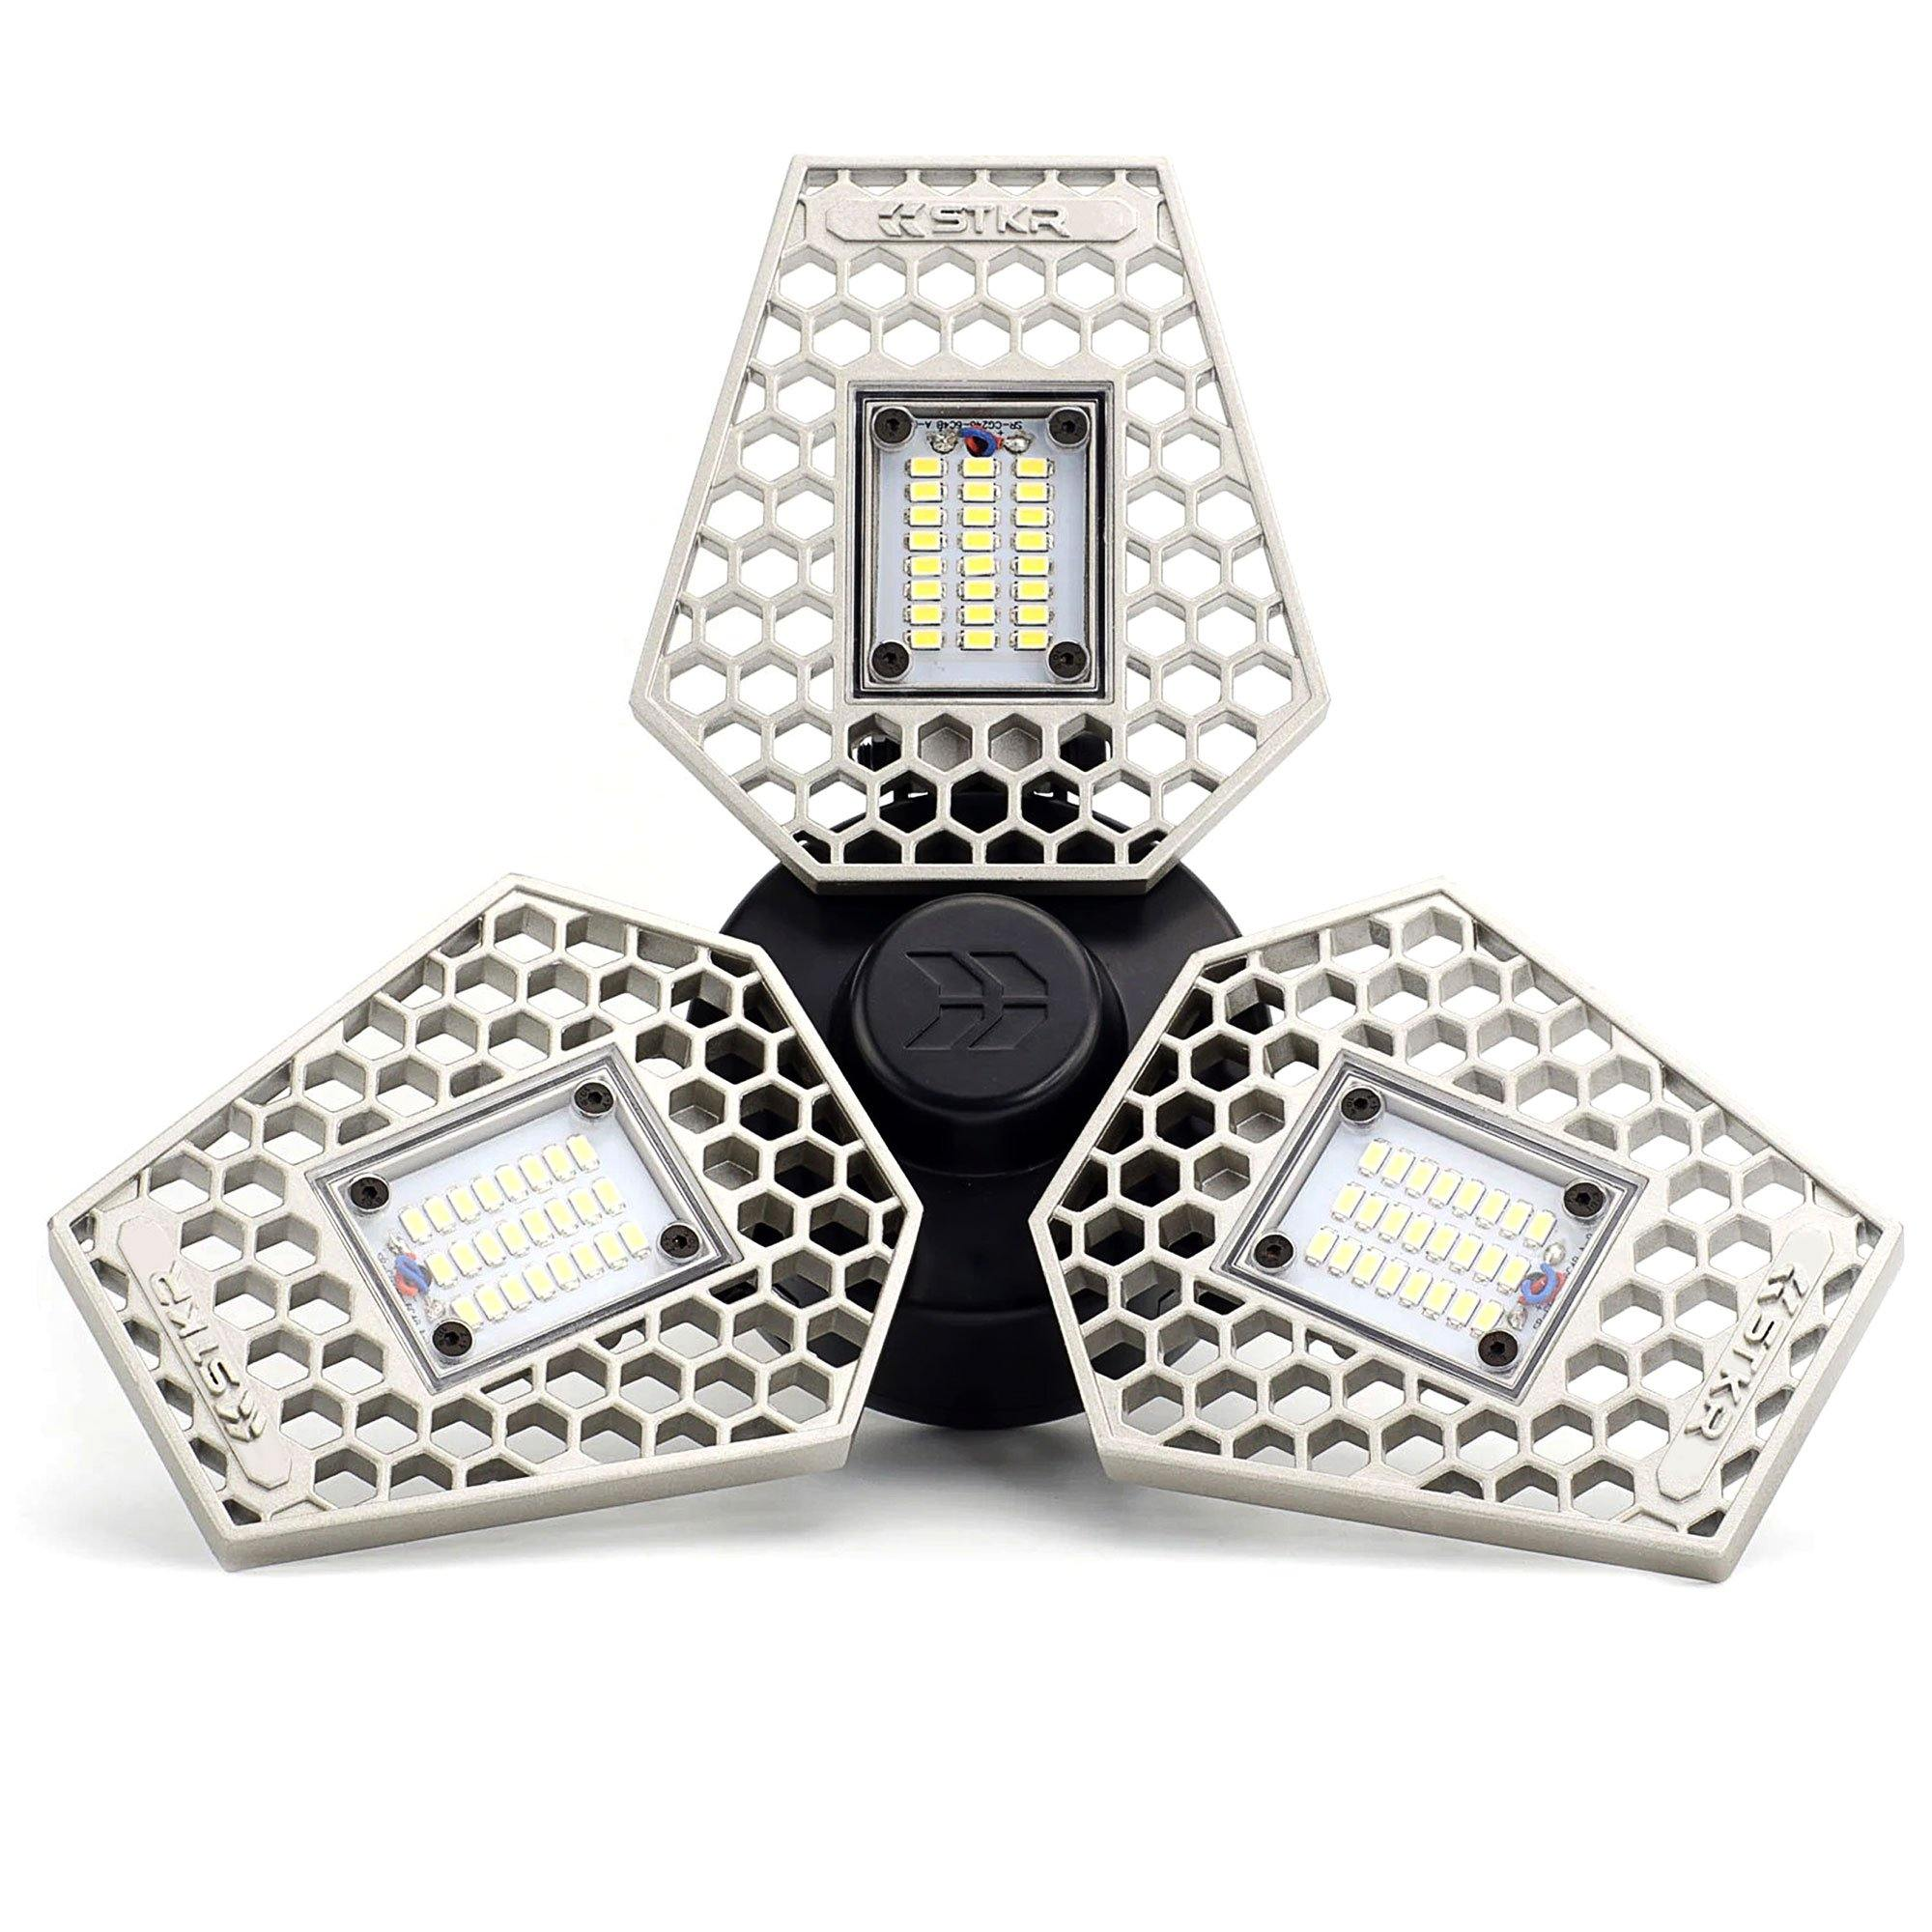 TRiLIGHT motion activated garage light bulb with 3000 TrueLumens | STKR Concepts - striker